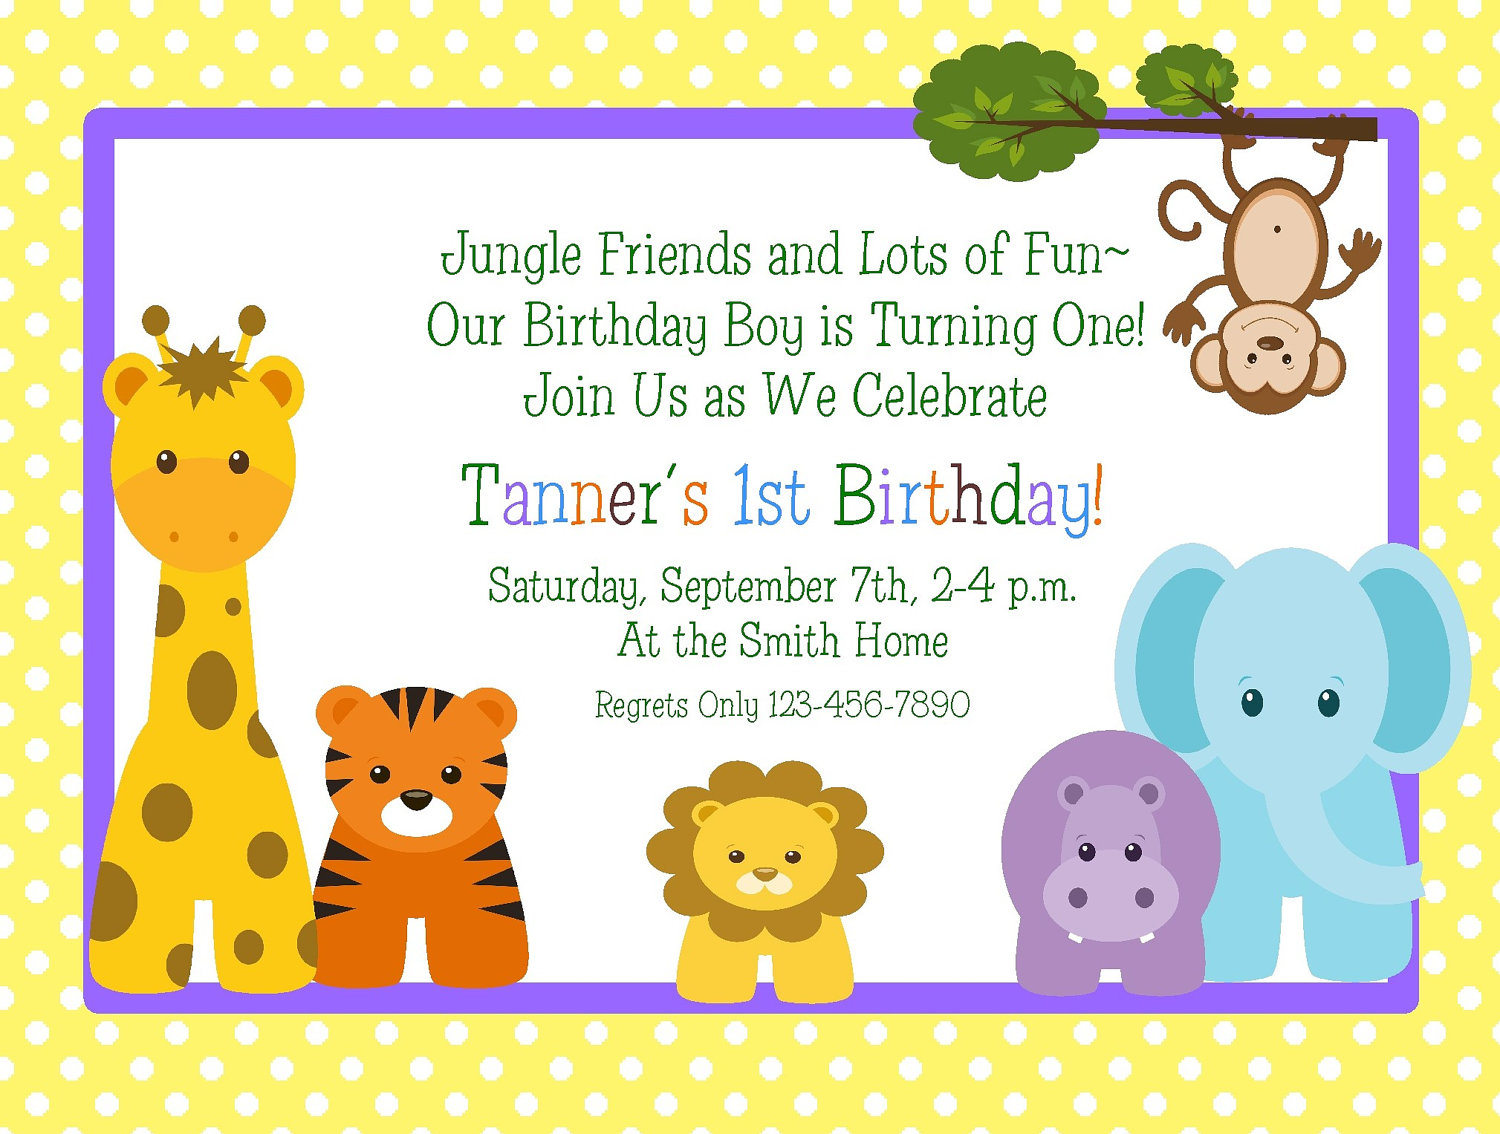 greeting cards party supply printable boys birthday invitation photo letters jungle animals any age 1st csr 3xr dk